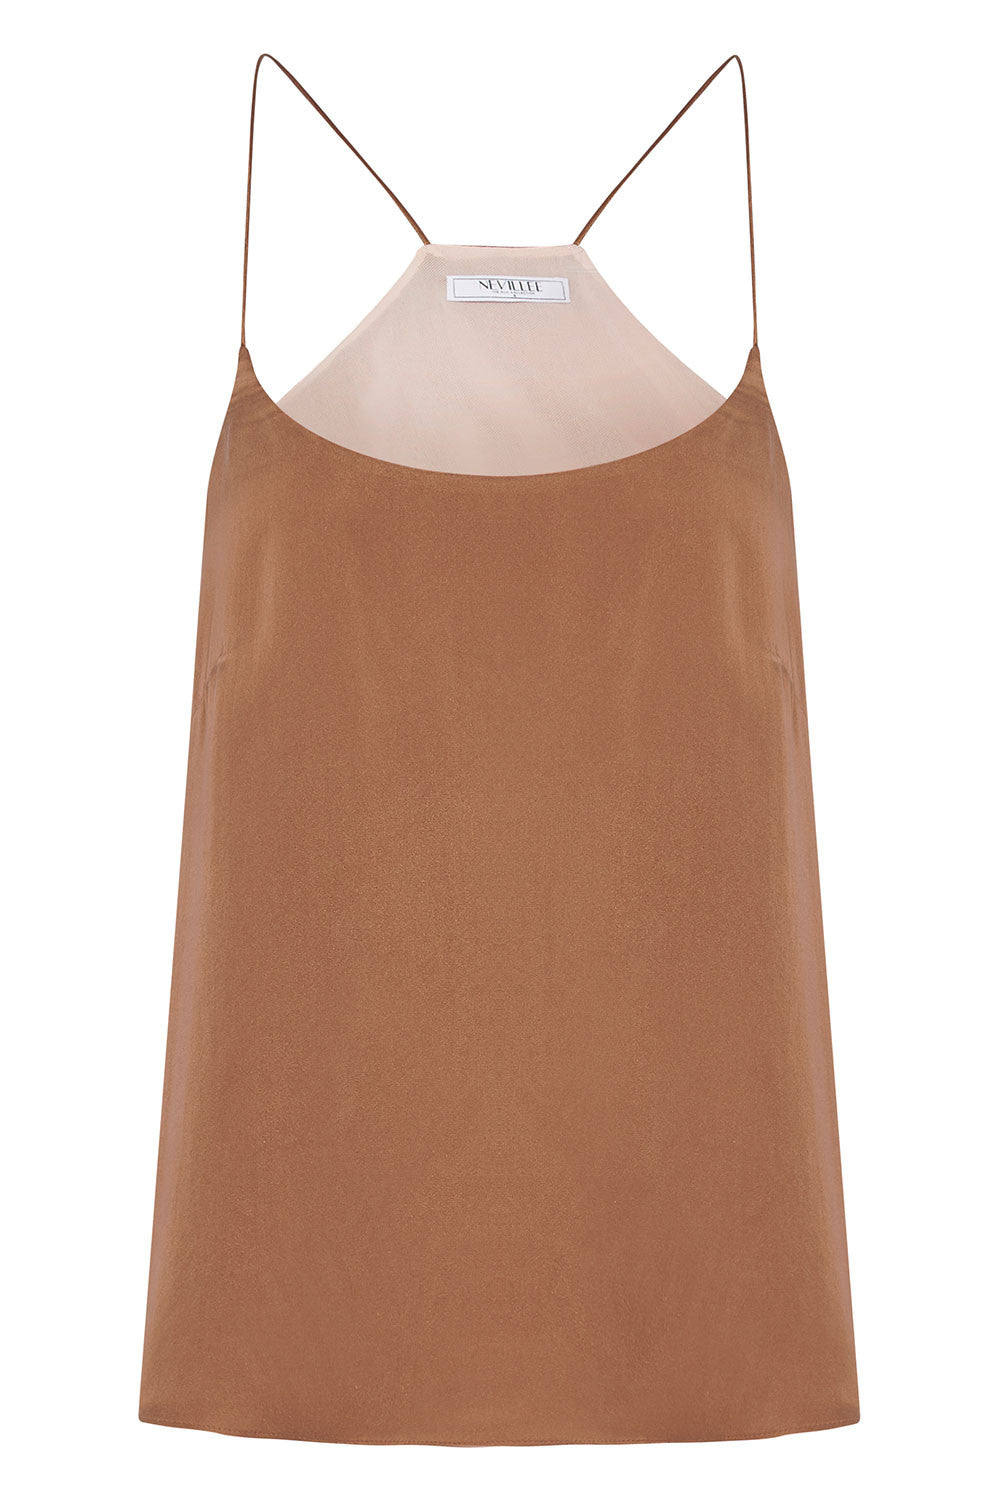 THE OFF DUTY CAMISOLE - BROWN LOVE